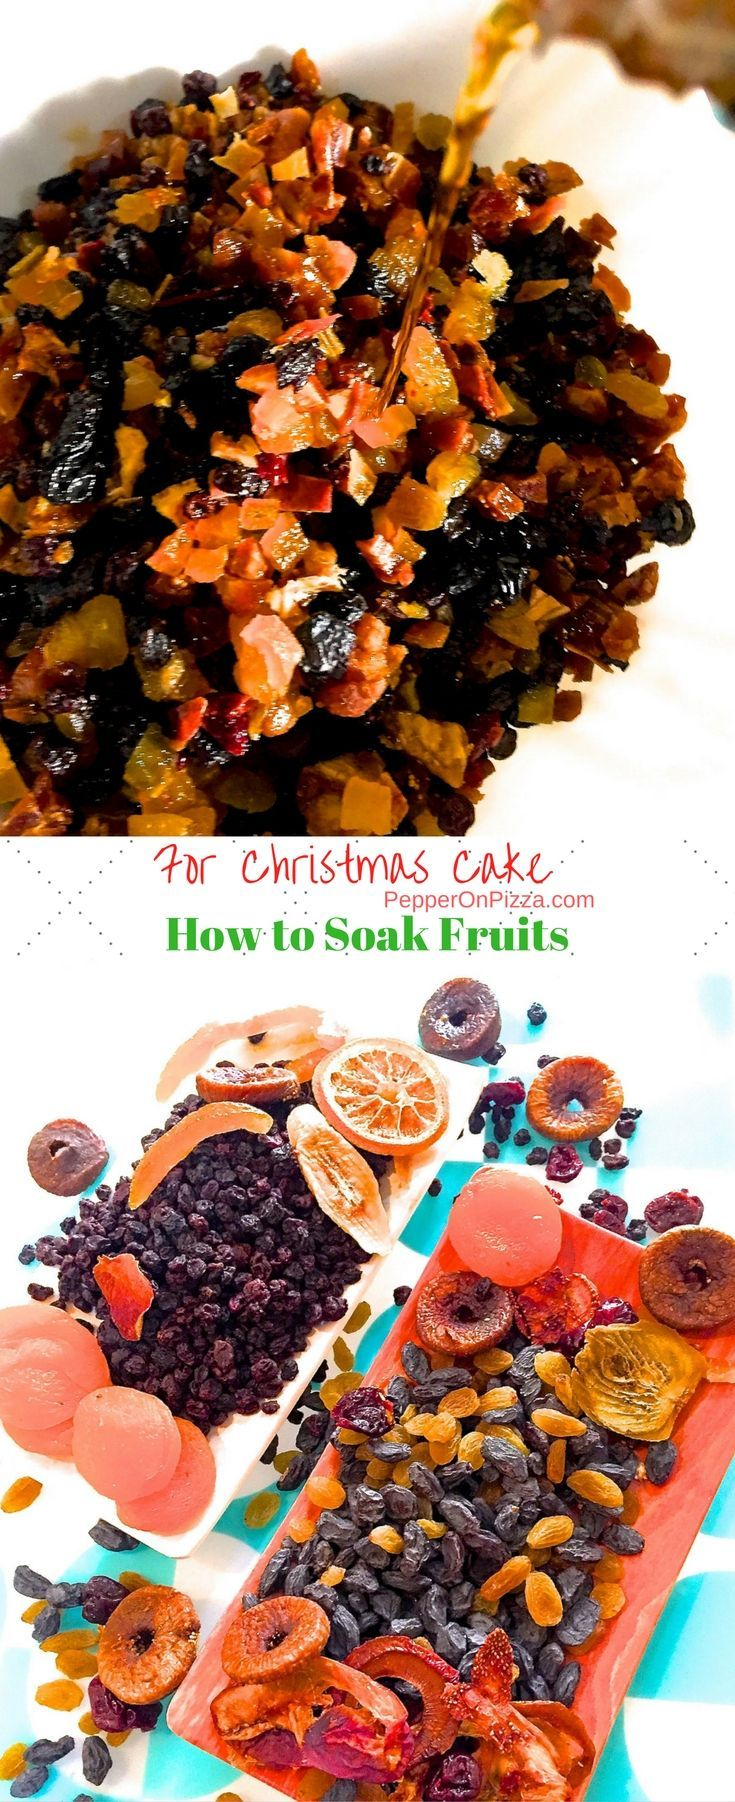 Soak Fruits for Christmas Cake | Recipe | Let's share the